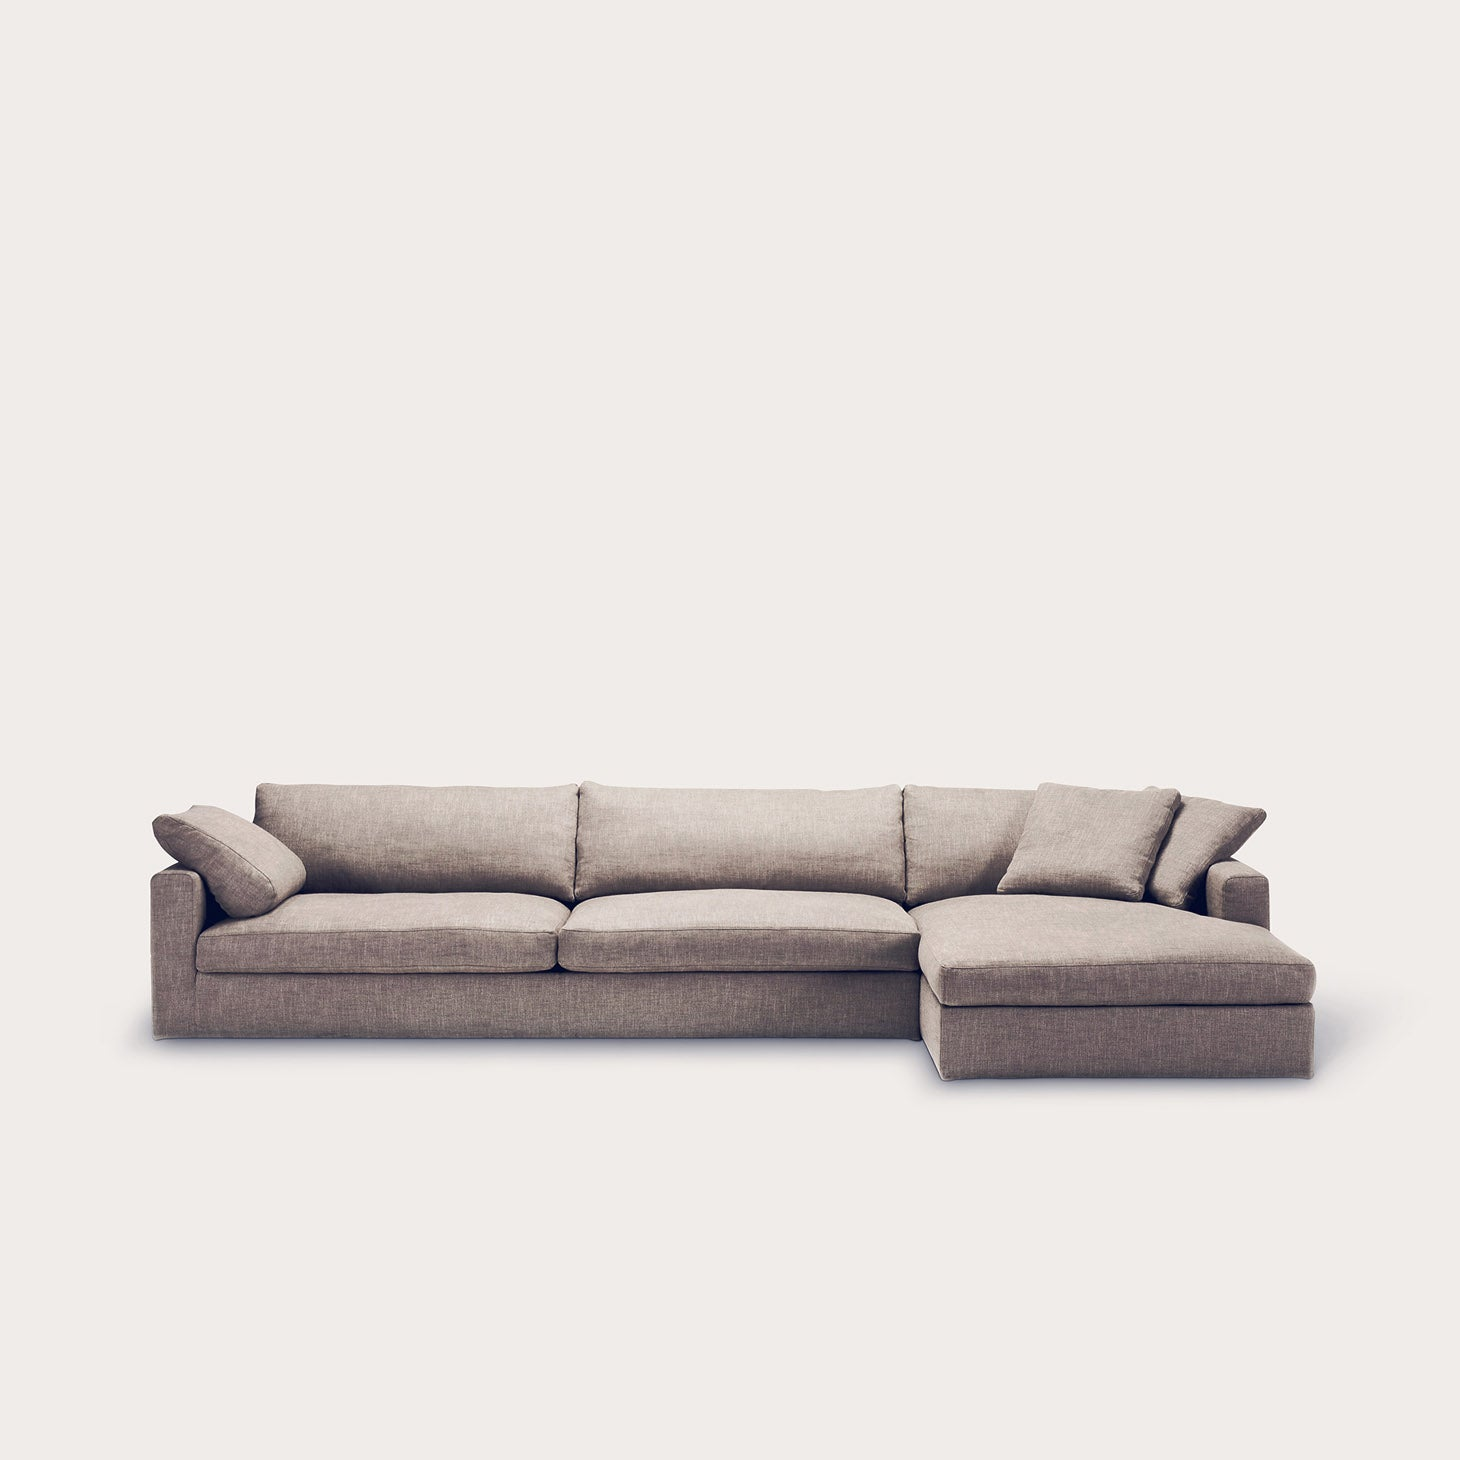 Fabio Seating Linteloo Designer Furniture Sku: 247-240-10028